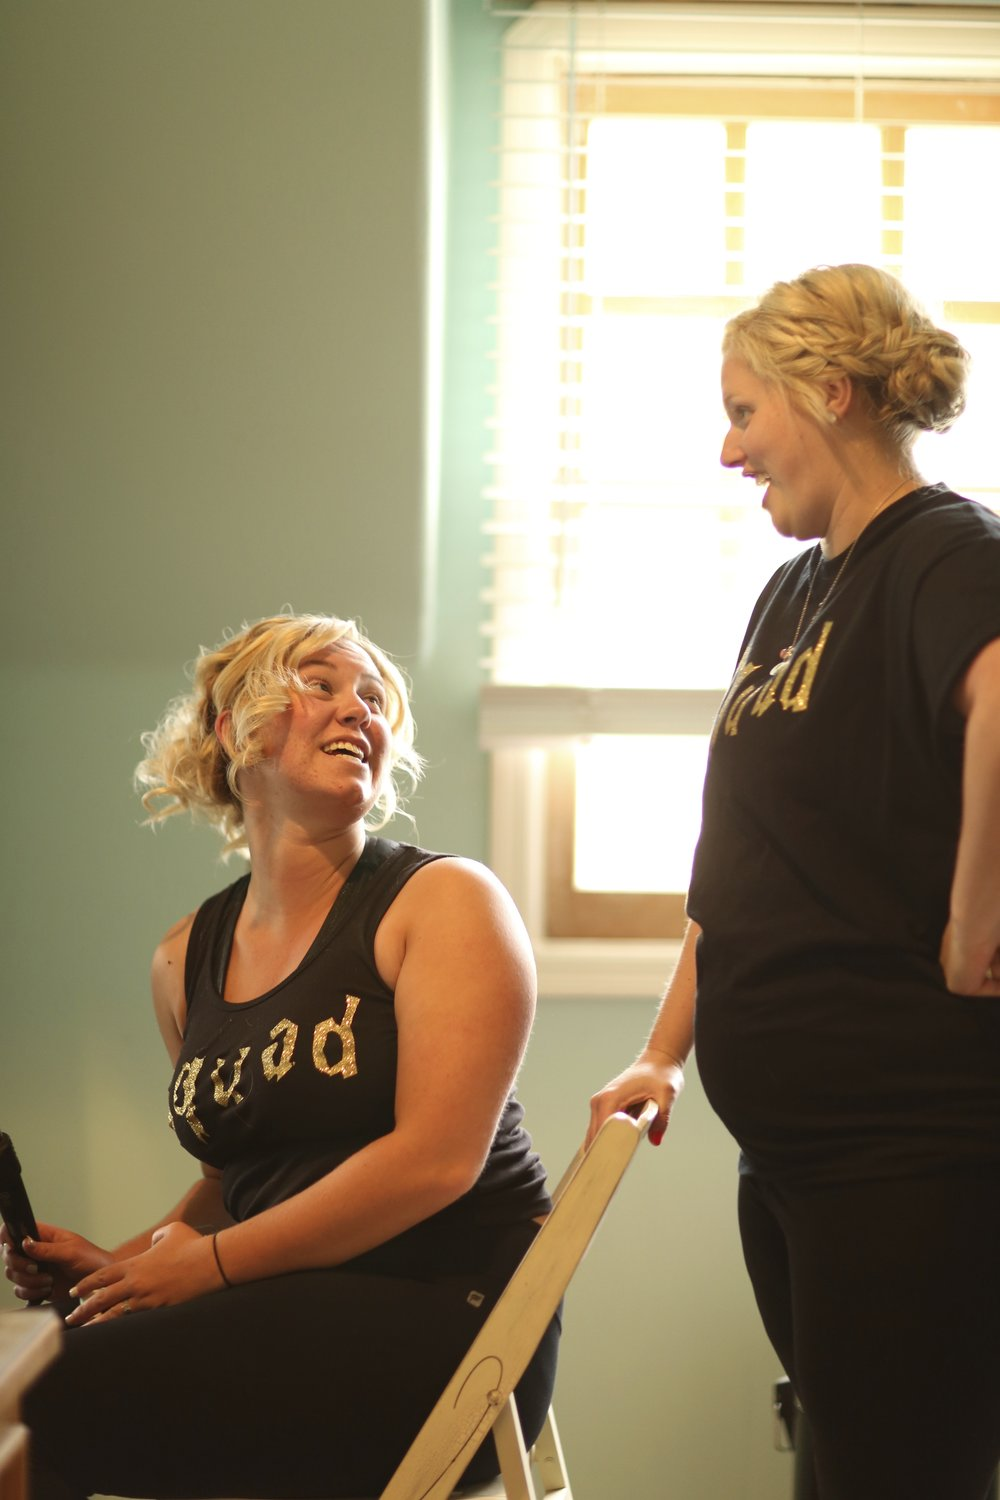 Bridesmaids getting ready for the big day. Each girl is wearing a t-shirt that says squad.